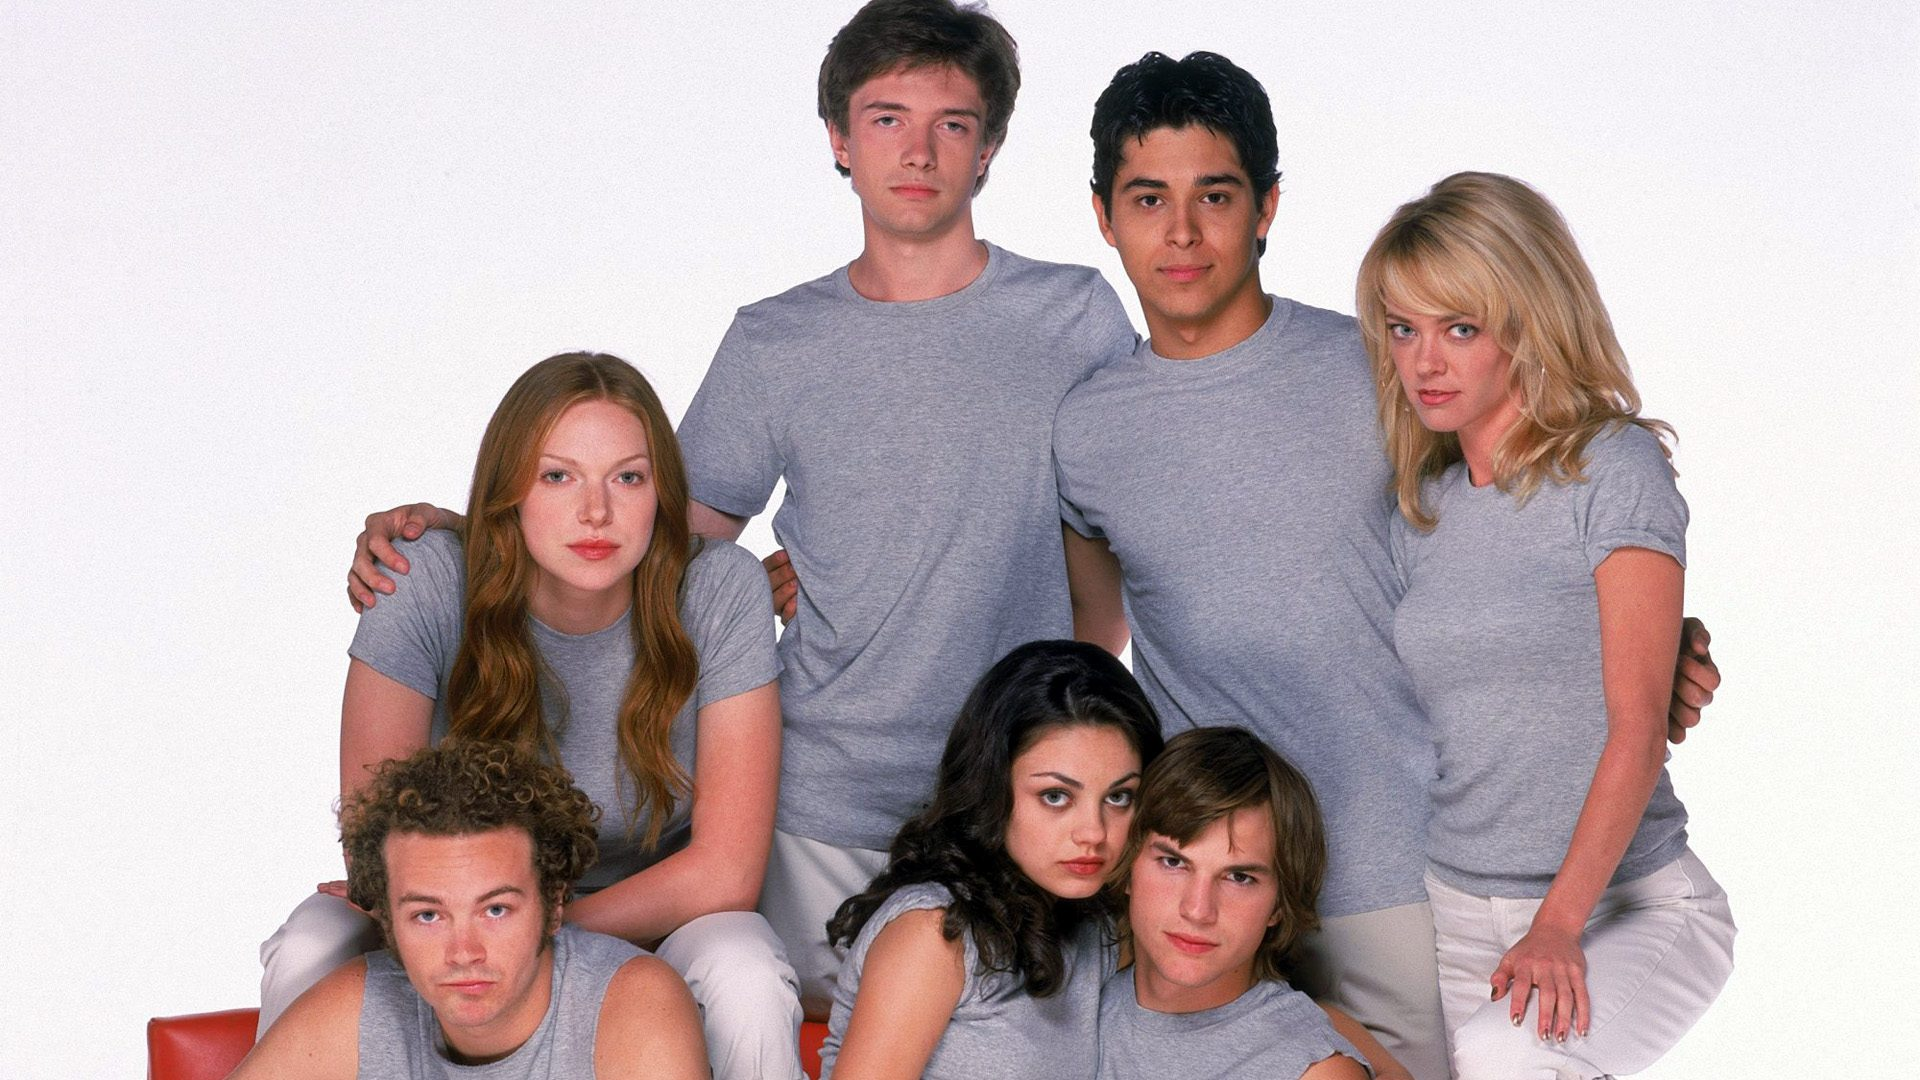 That 70 s show images wallpaper hd wallpaper and background photos